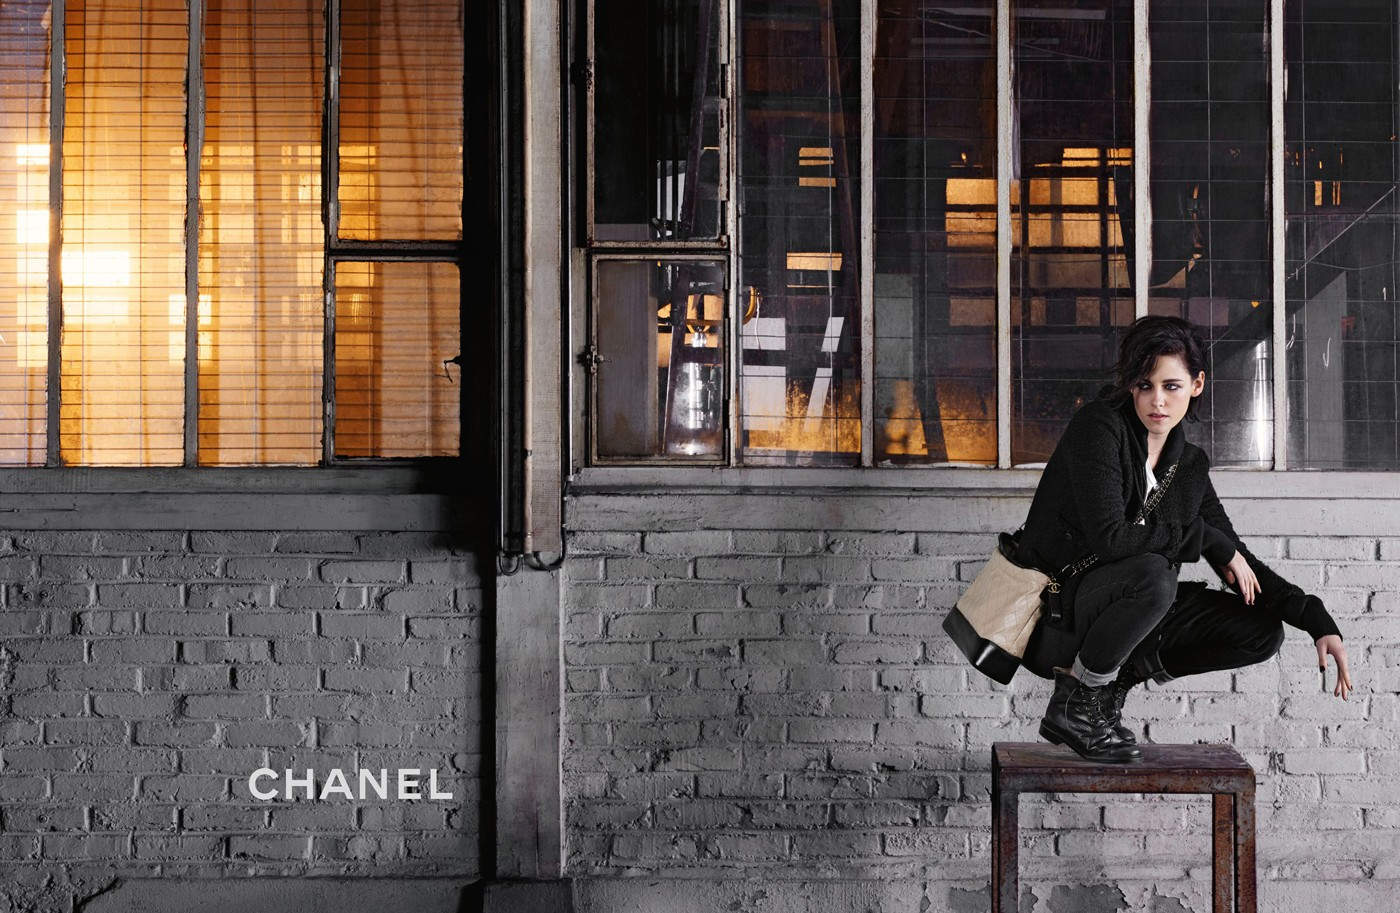 <p>Coco Chanel - 'The Year of Gabrielle'</p>